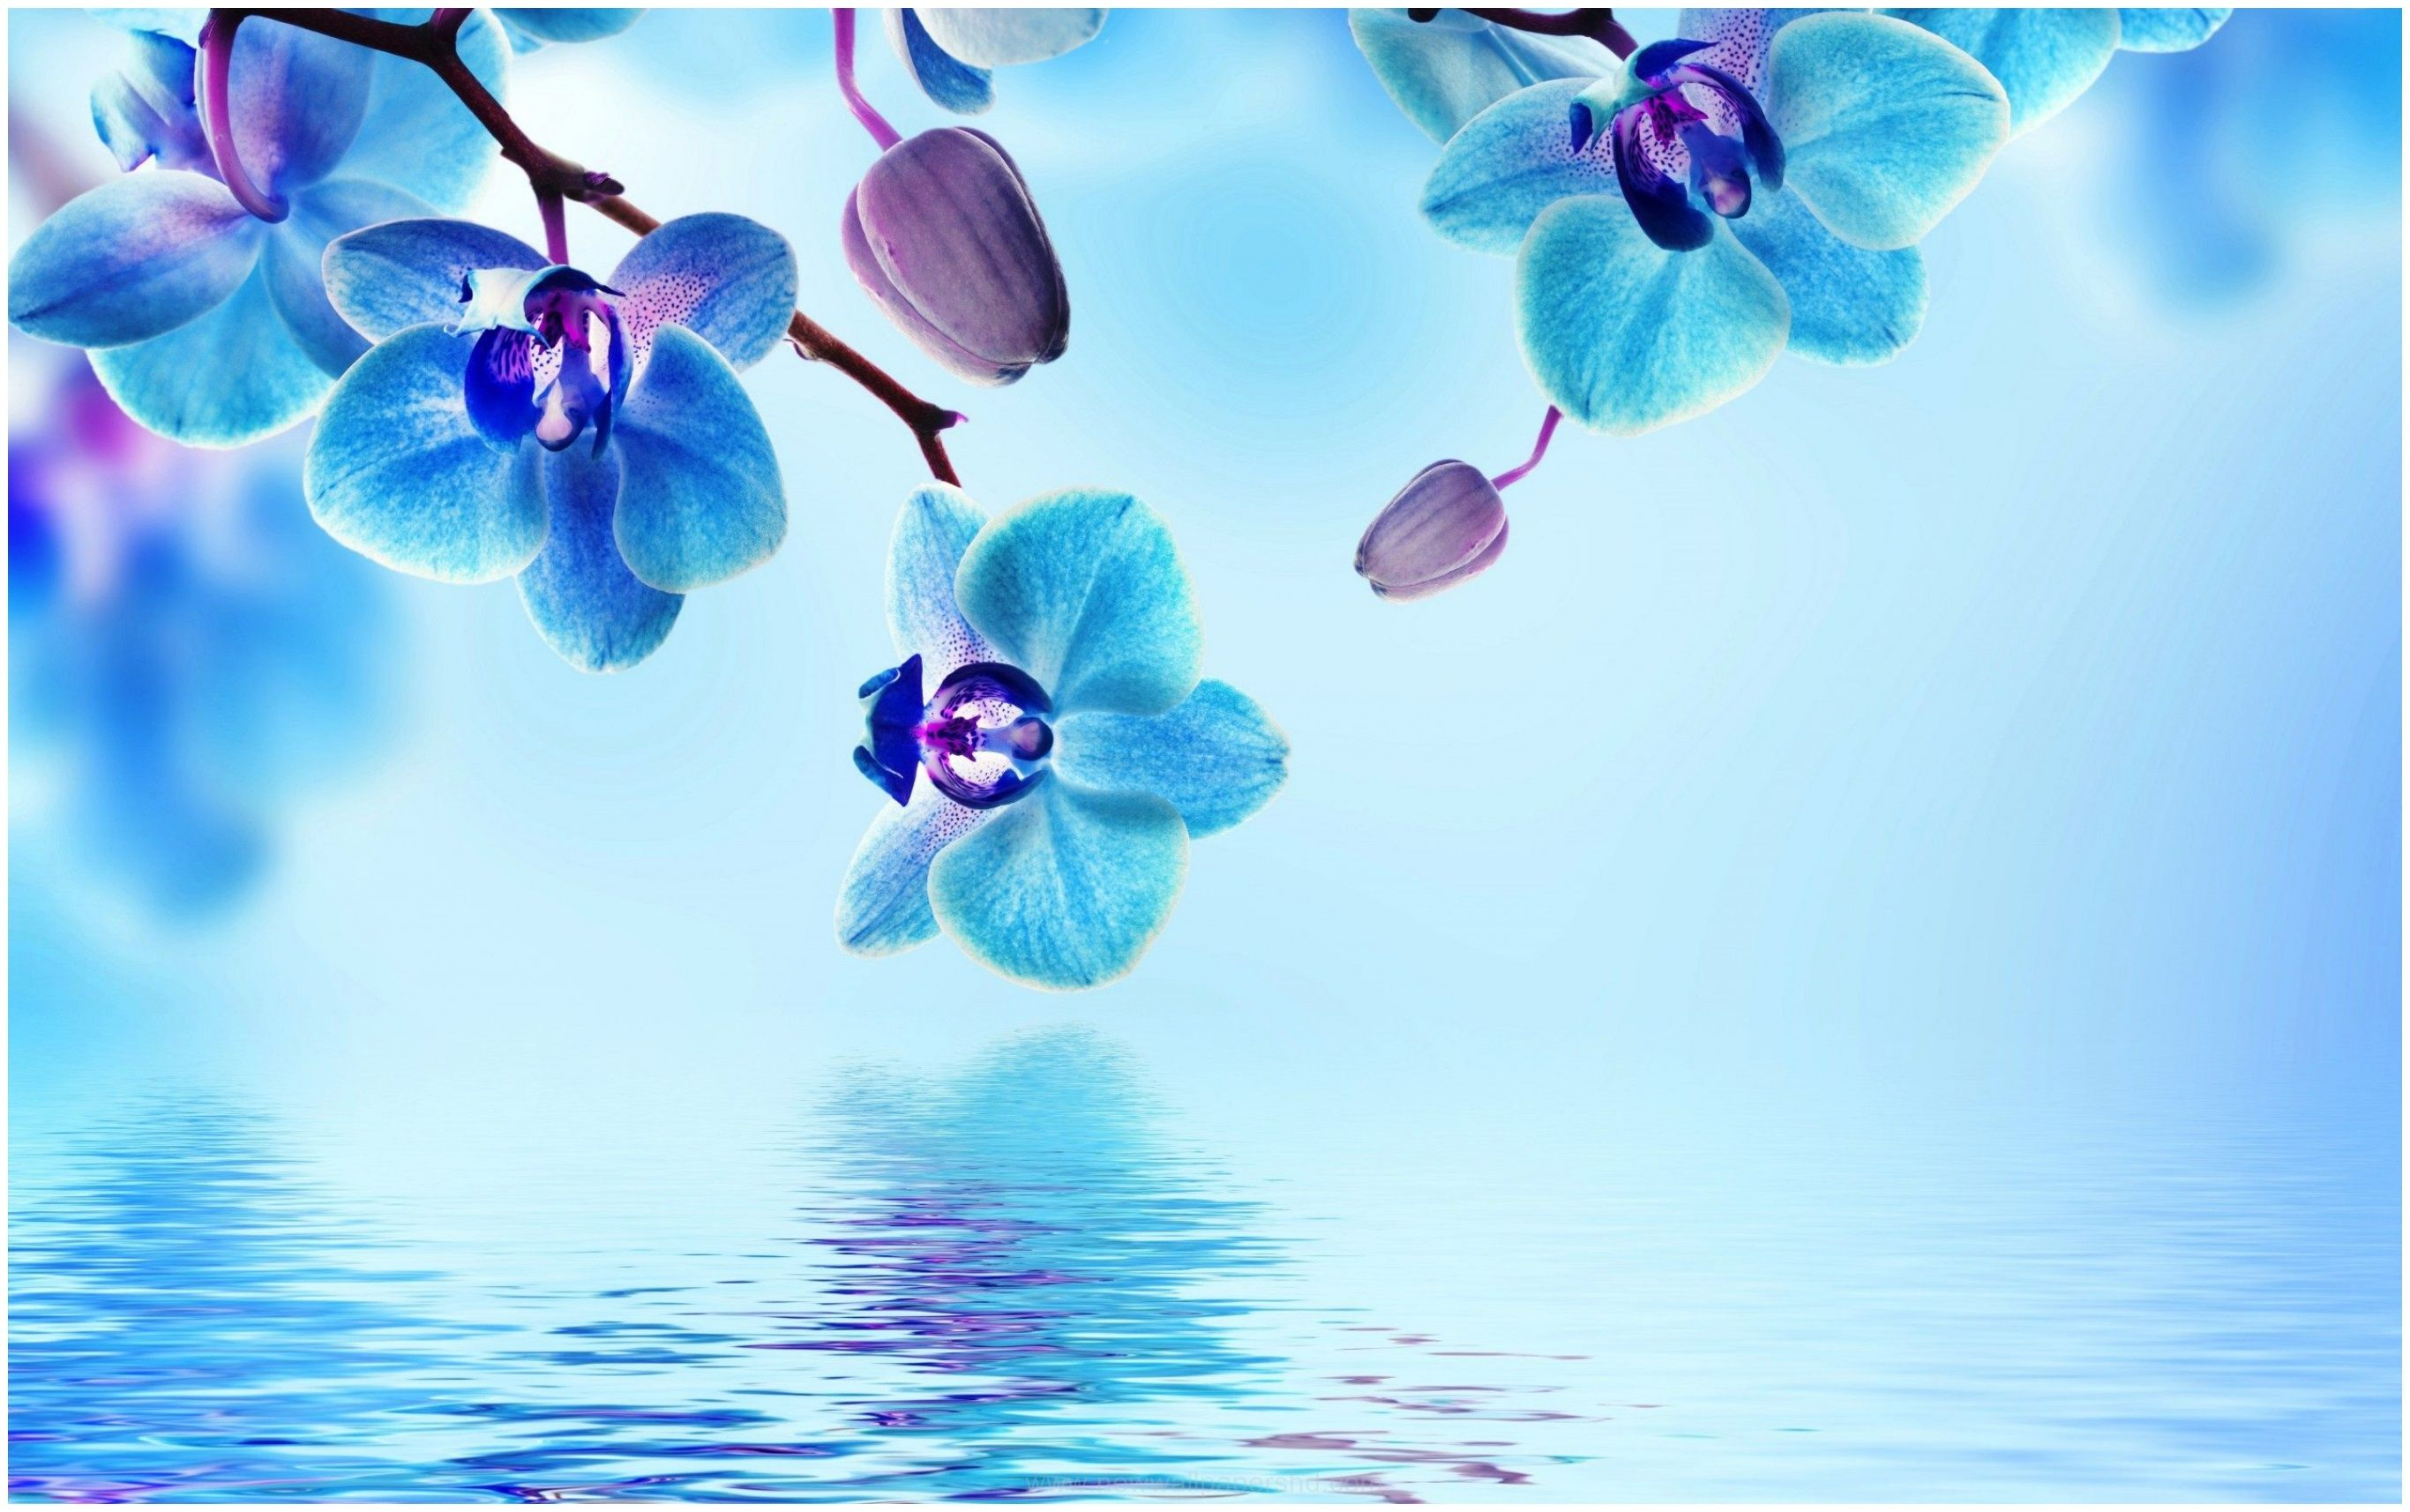 BLUE ORCHID FLOWER HD WALLPAPER